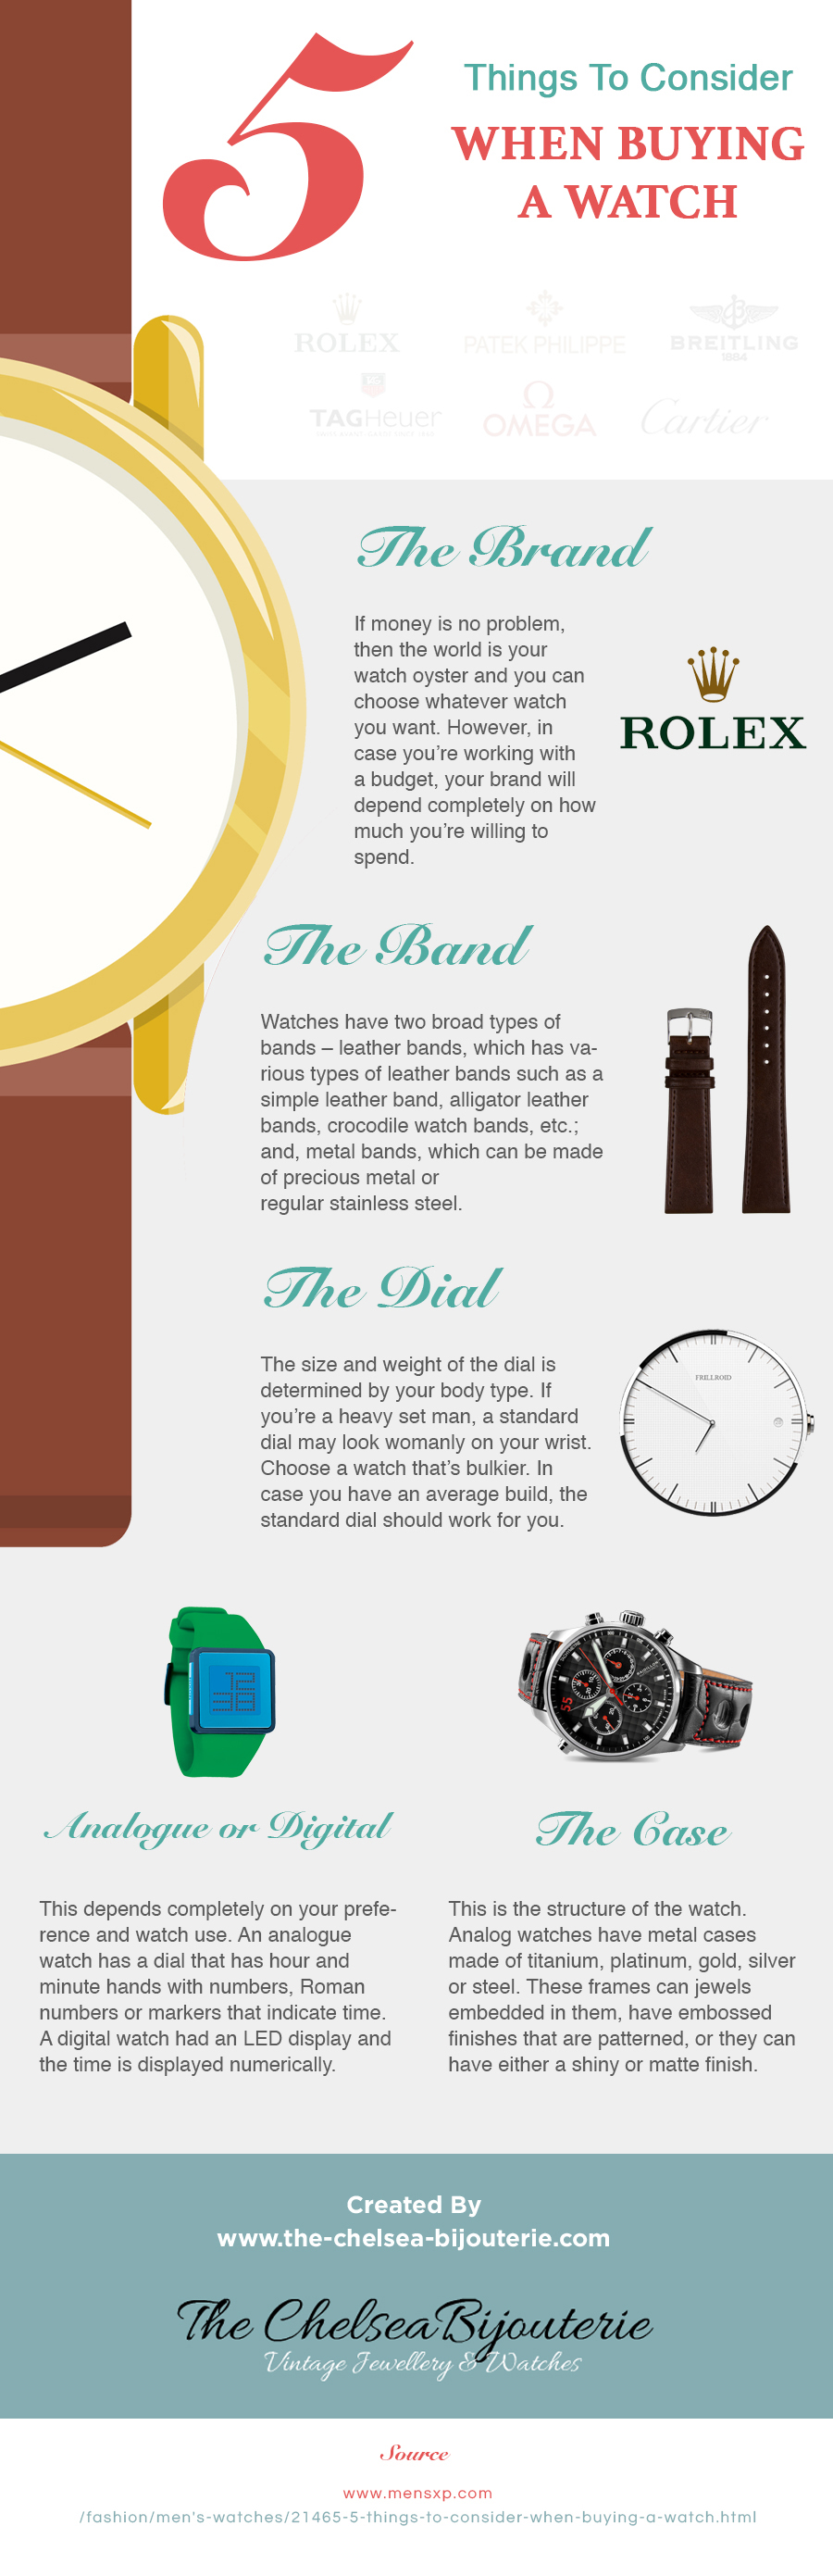 5 Things To Consider When Buying A Watch